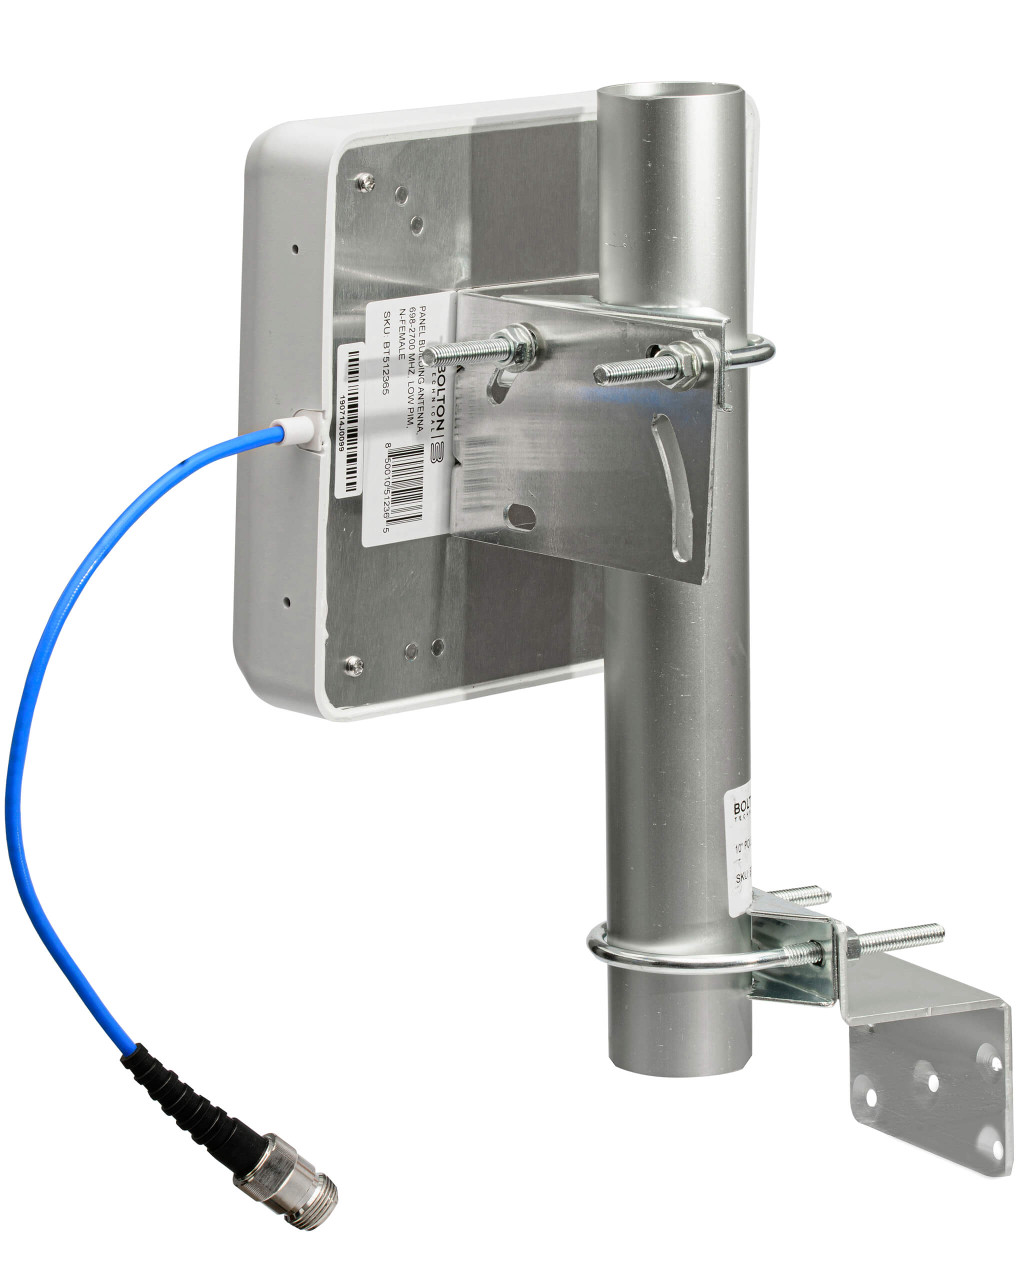 The Outdoor Board  Wall Mount Antenna pole mounting